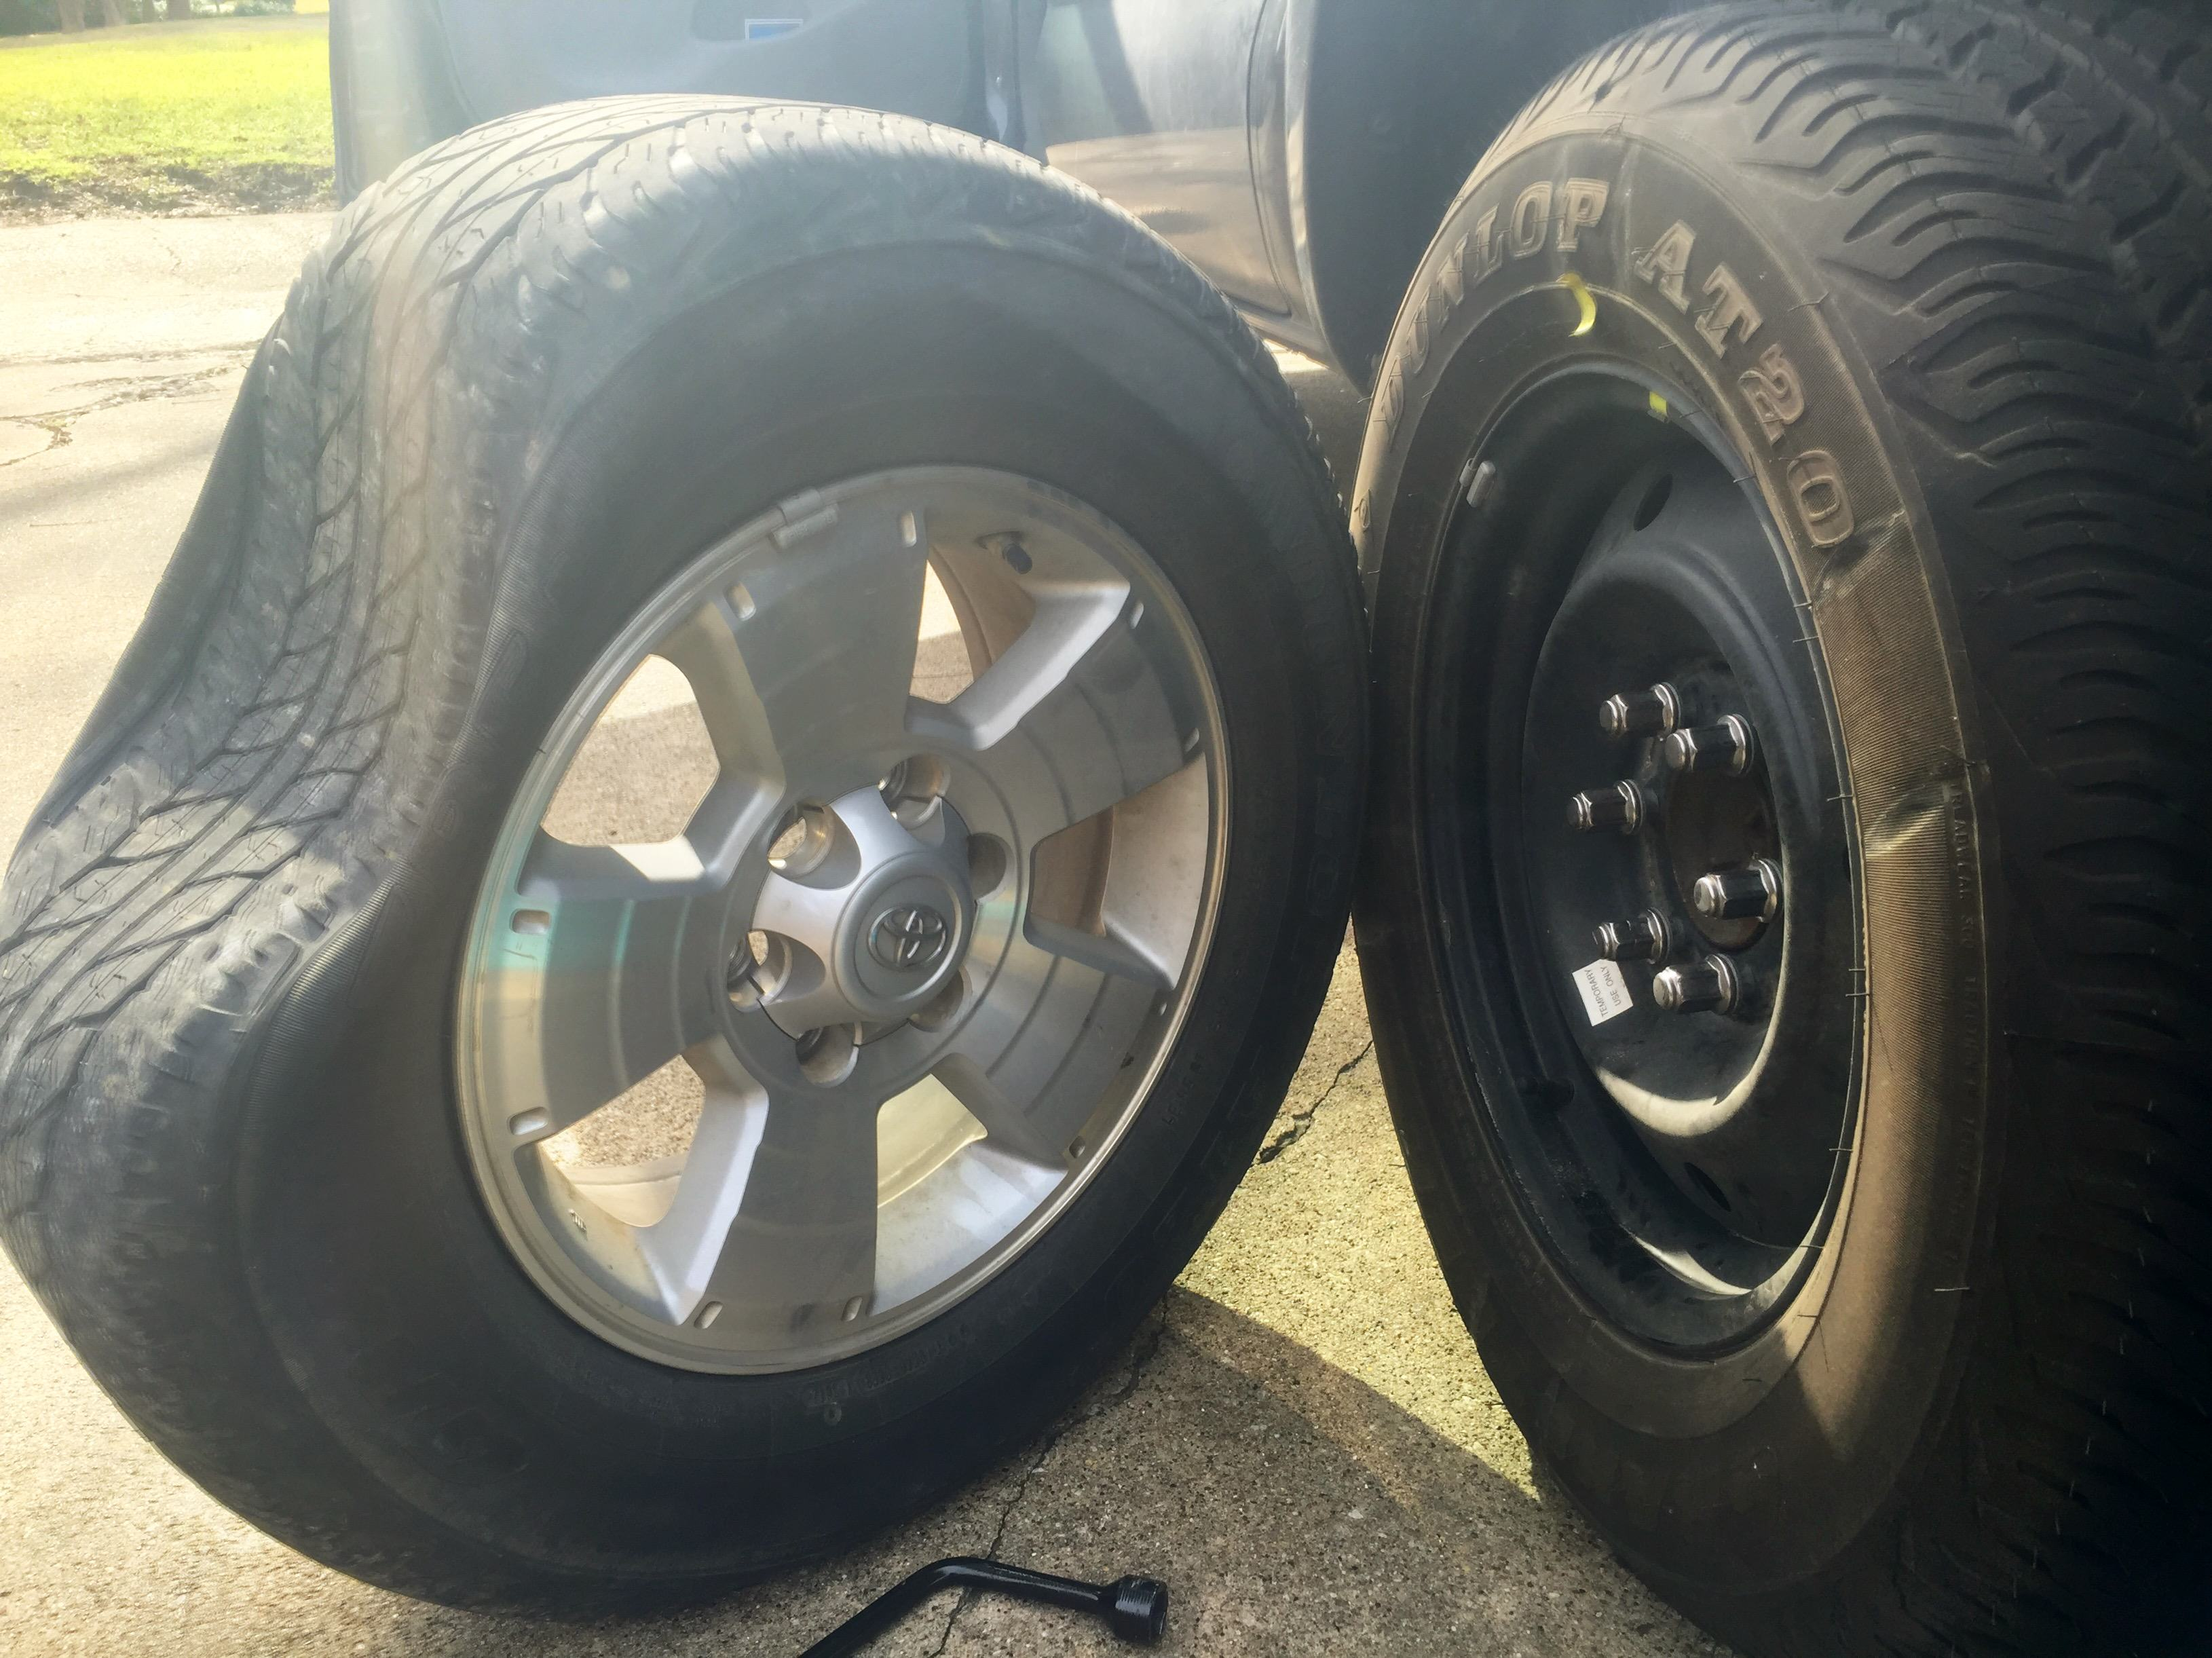 Guy Gets Flat Tire, Takes Opportunity To Troll The Sh*t Out Of His Mates 3